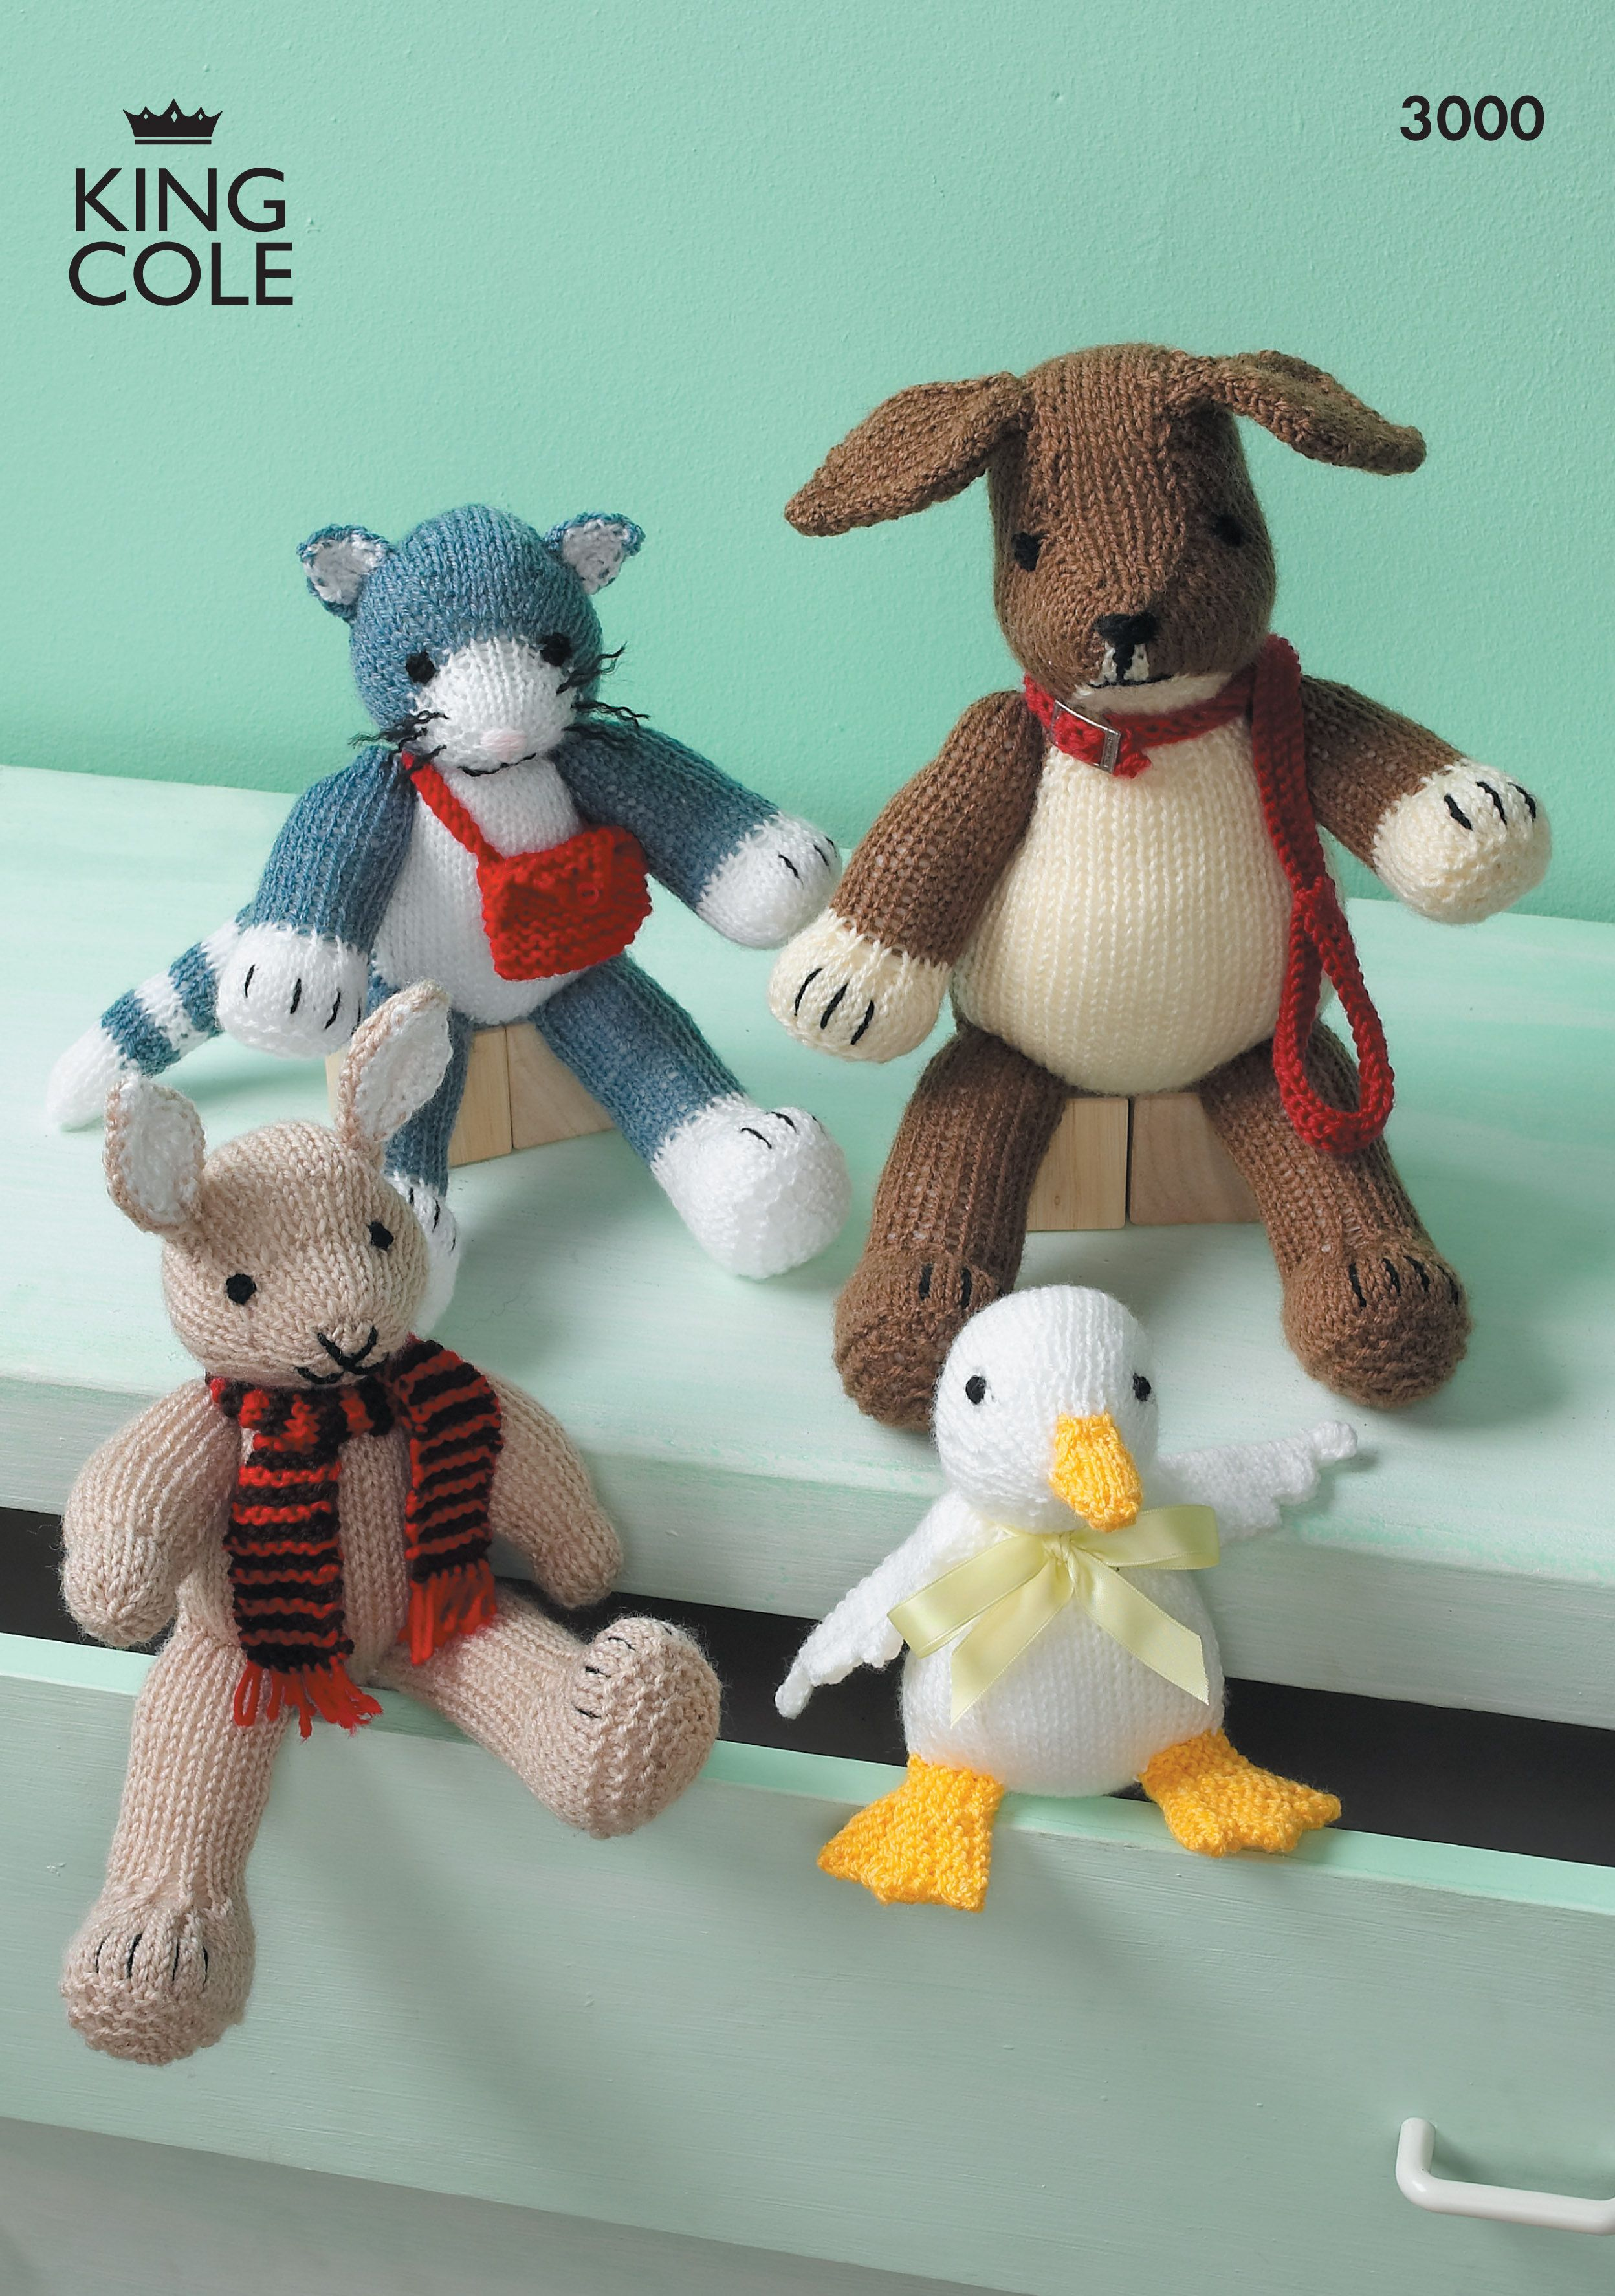 Knitted Toys - King Cole | Toys and Novelties | Pinterest | Toy ...